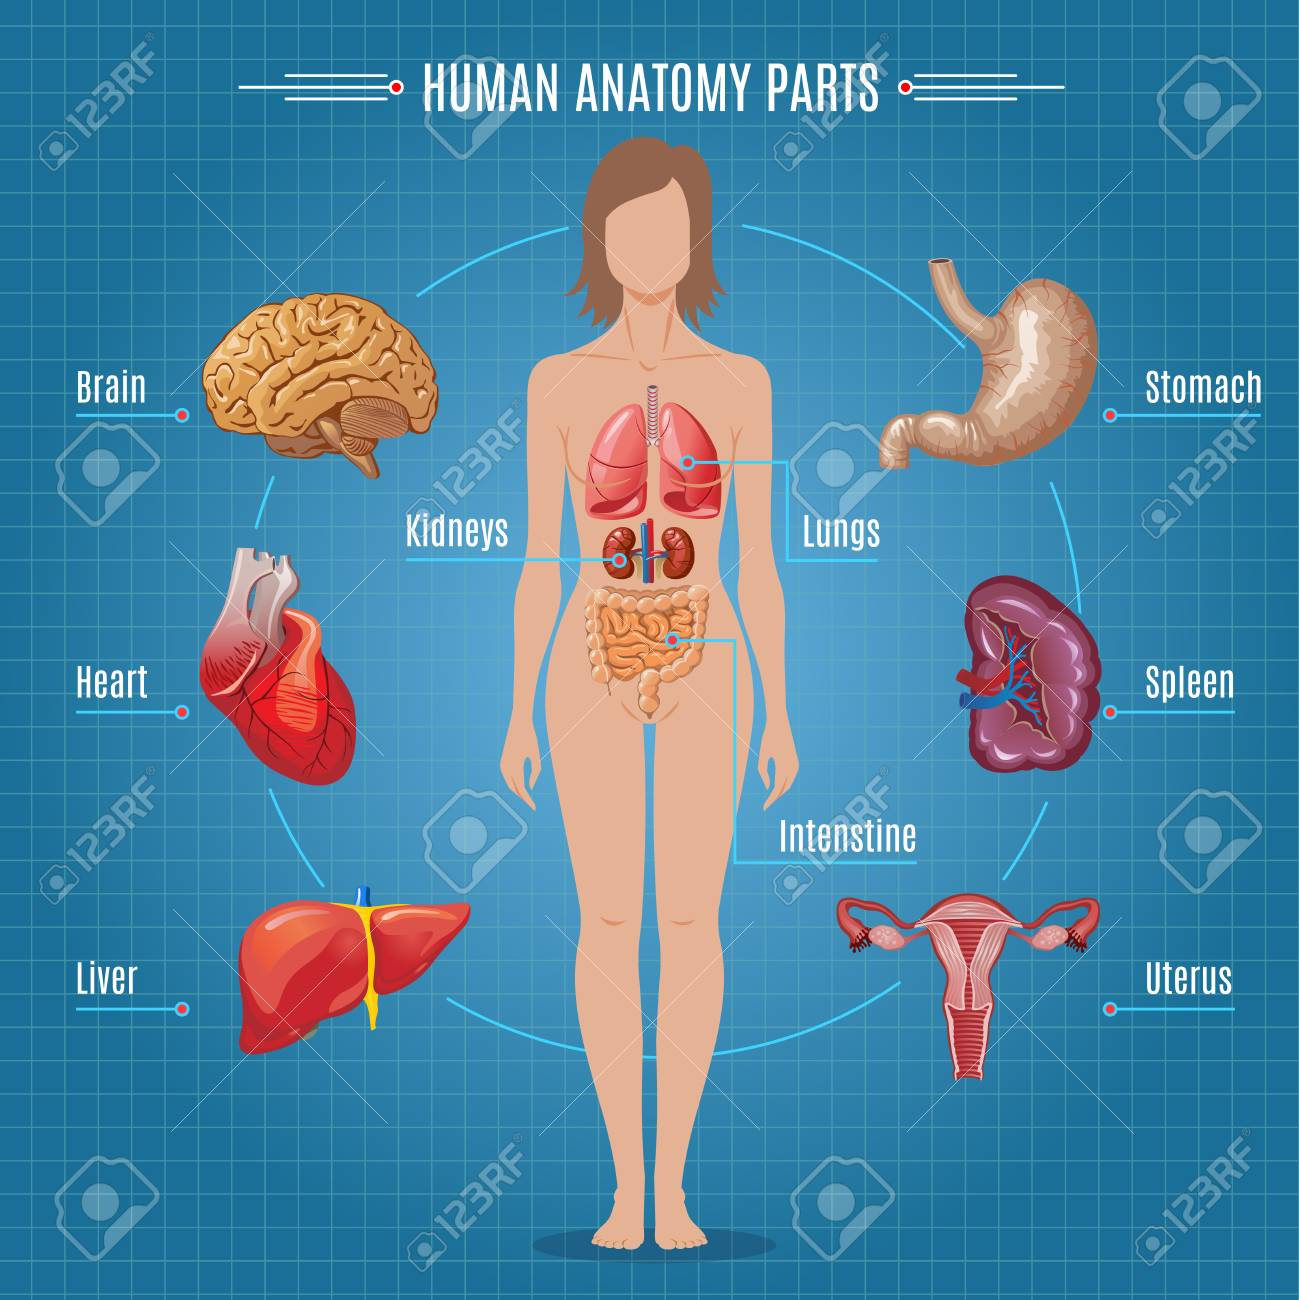 Human Anatomy Parts Infographic Concept Royalty Free Cliparts